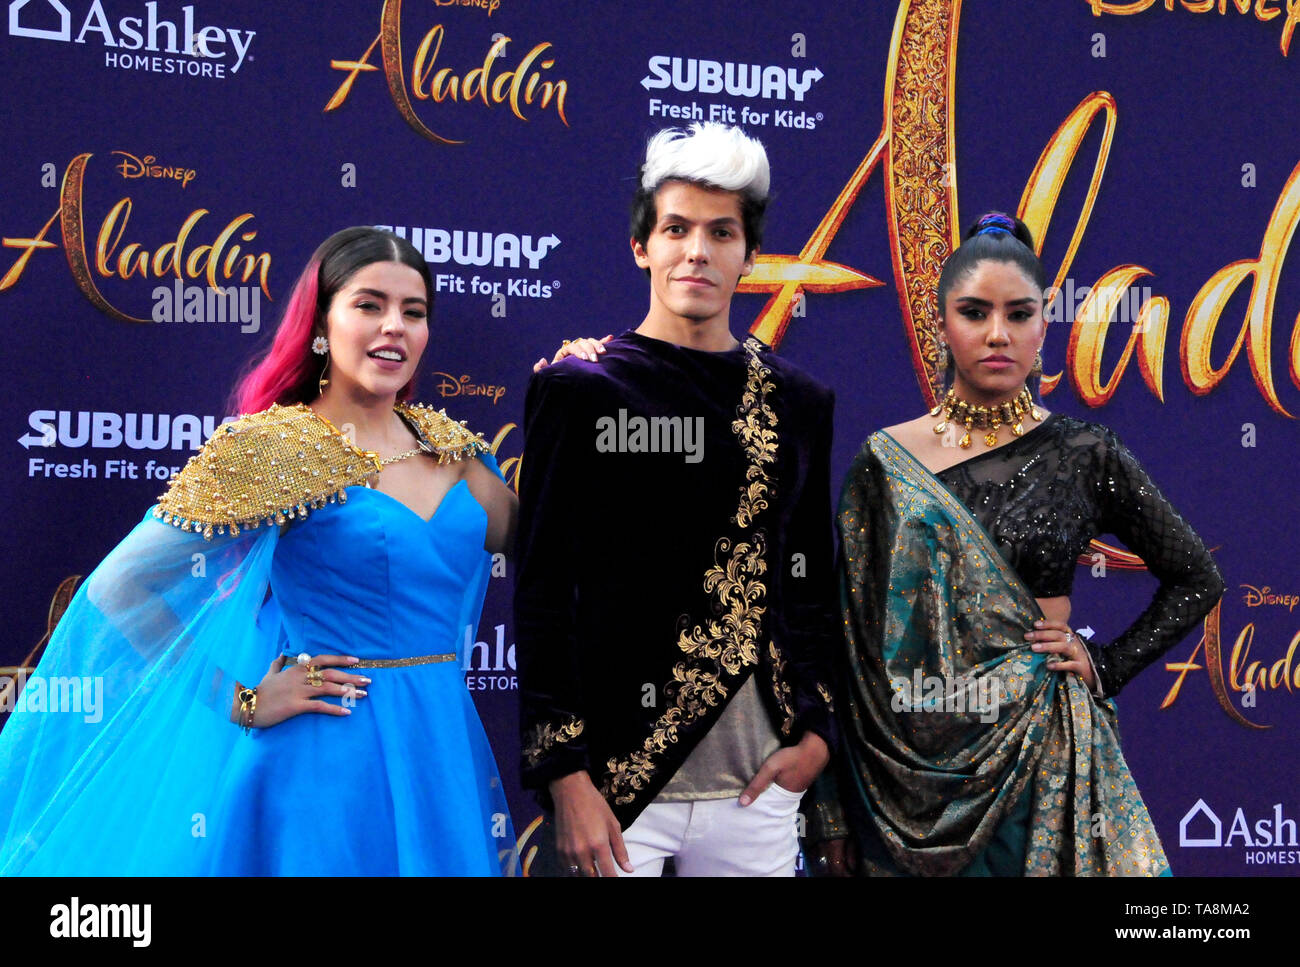 Hollywood, California, USA 21st May 2019  Los Polinesios attends the Disney Premiere of 'Aladdin' on May 21, 2019 at El Capitan Theatre in Hollywood, California, USA. Photo by Barry King/Alamy Stock Photo - Stock Image